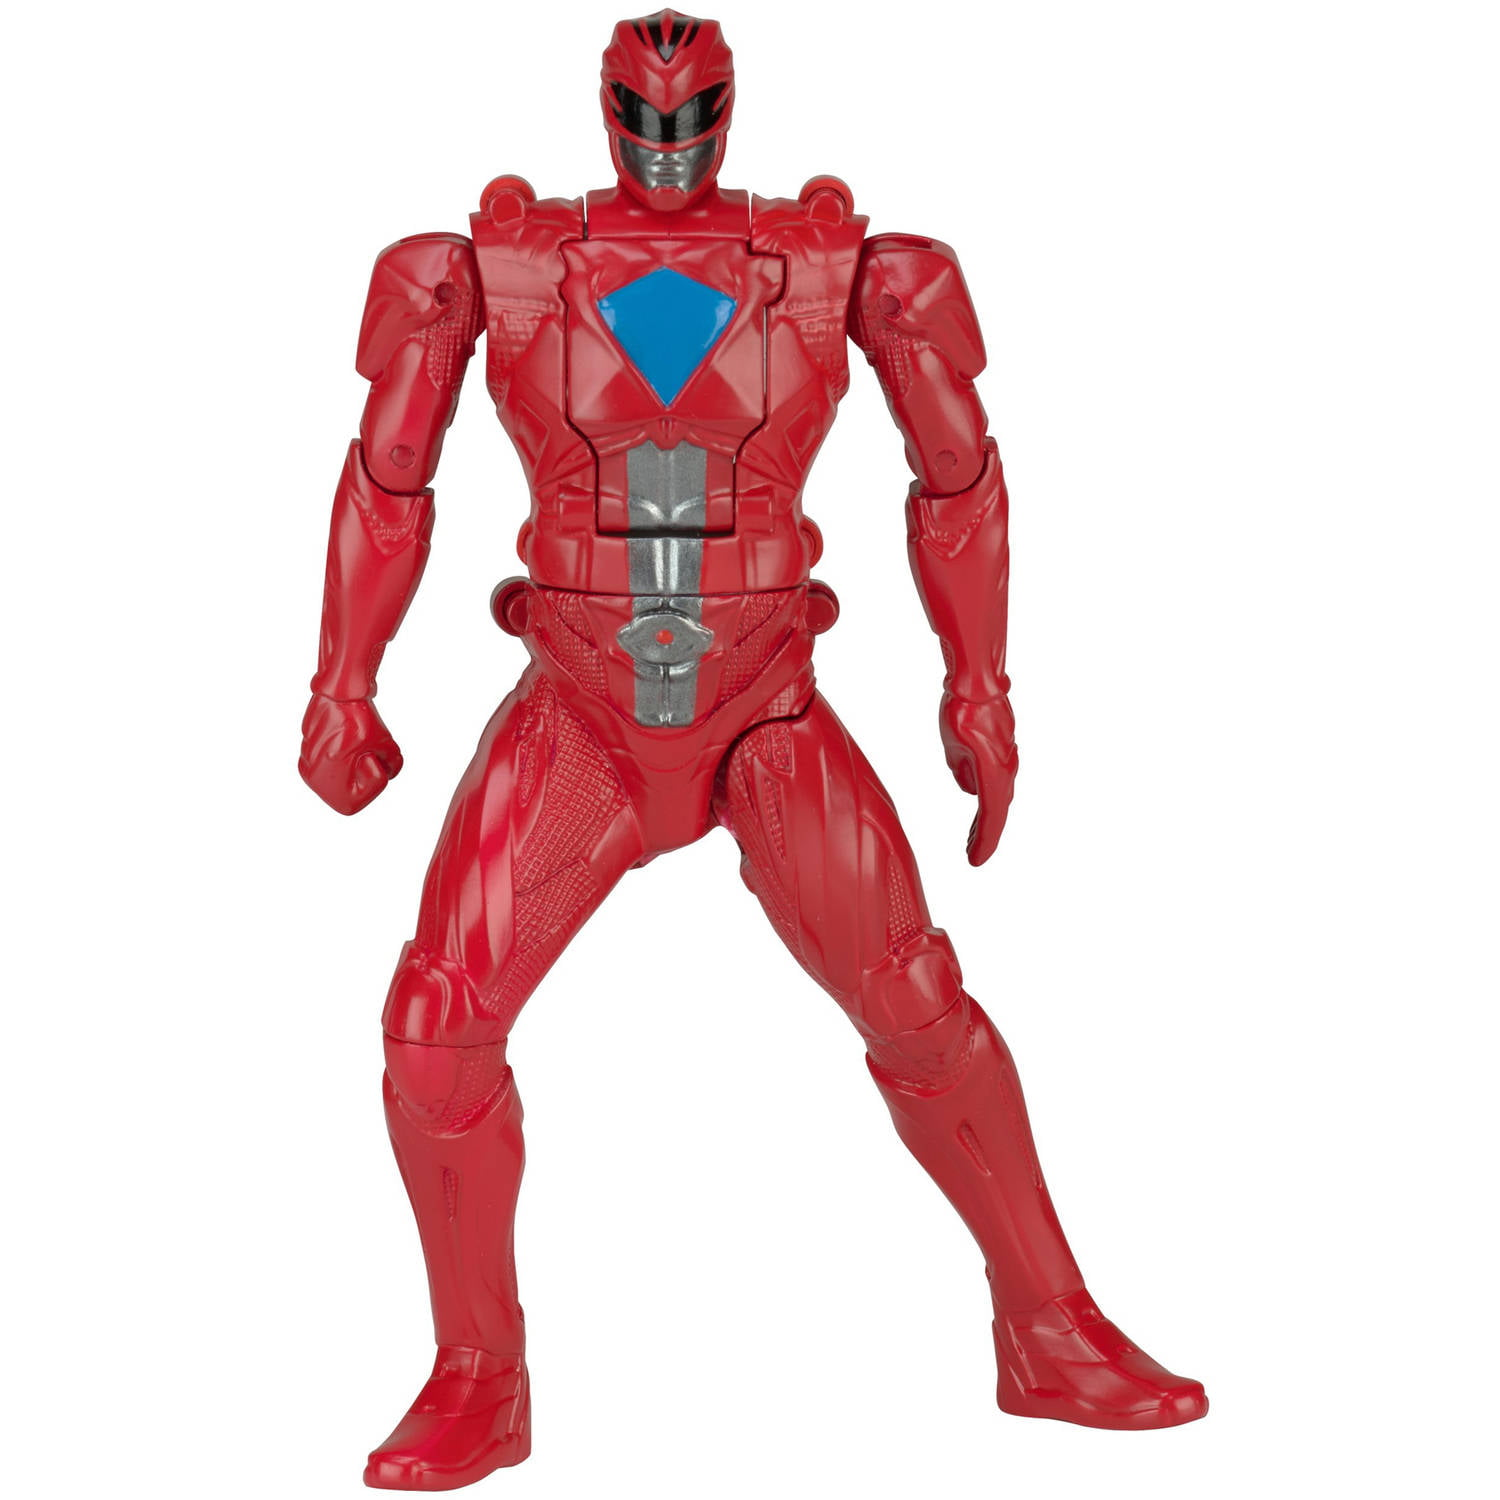 Power Rangers Movie Super Morphing Red Ranger Figure by Bandai America